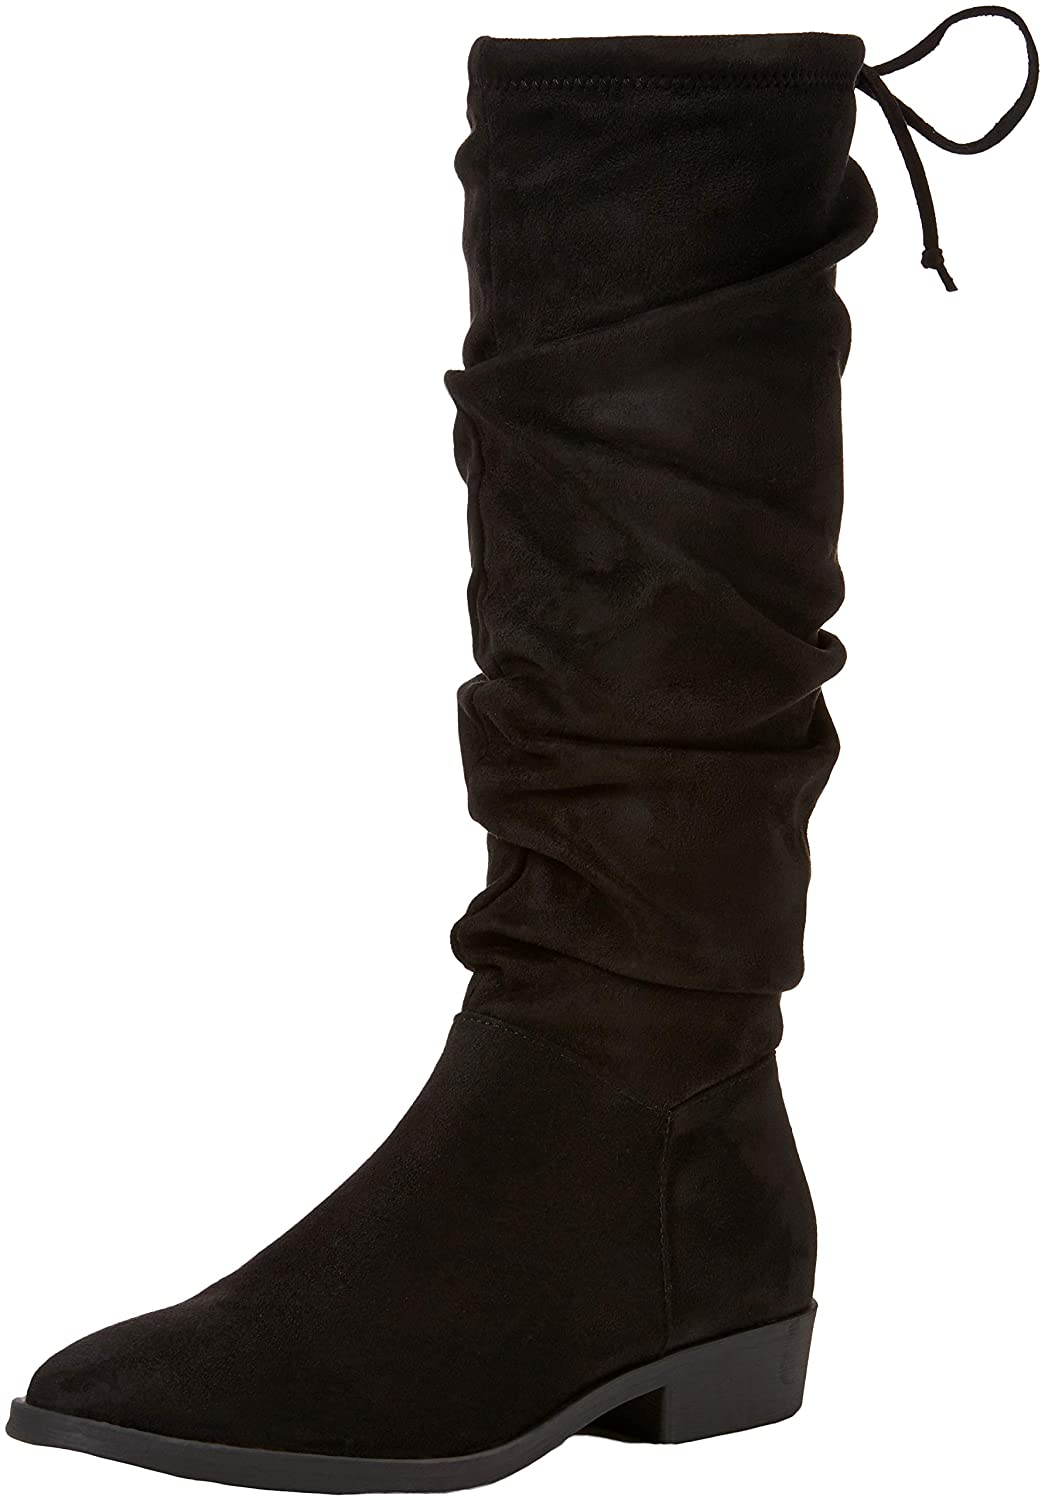 New Look Bumpy, Bottes Femme Femme Black Look (Black New 1) ef69015 - robotanarchy.space